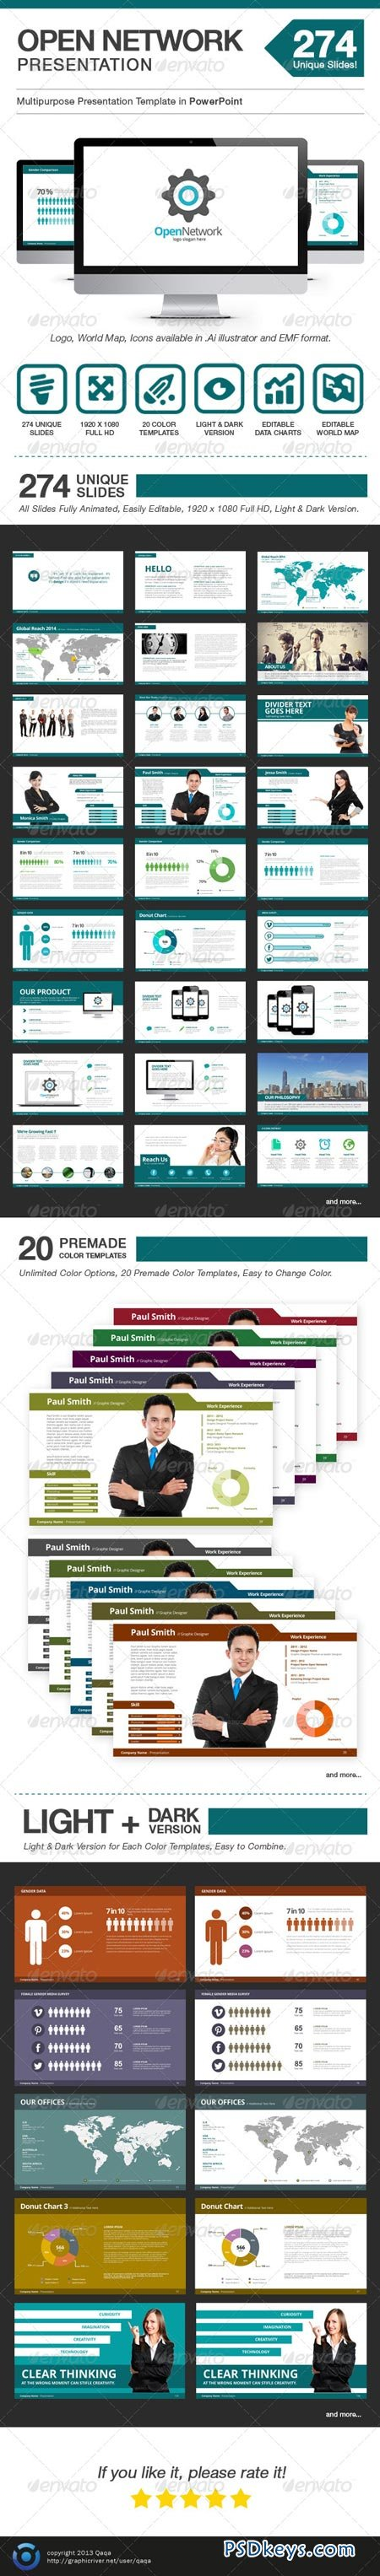 Open Network Presentation - Power Point Template 6485998